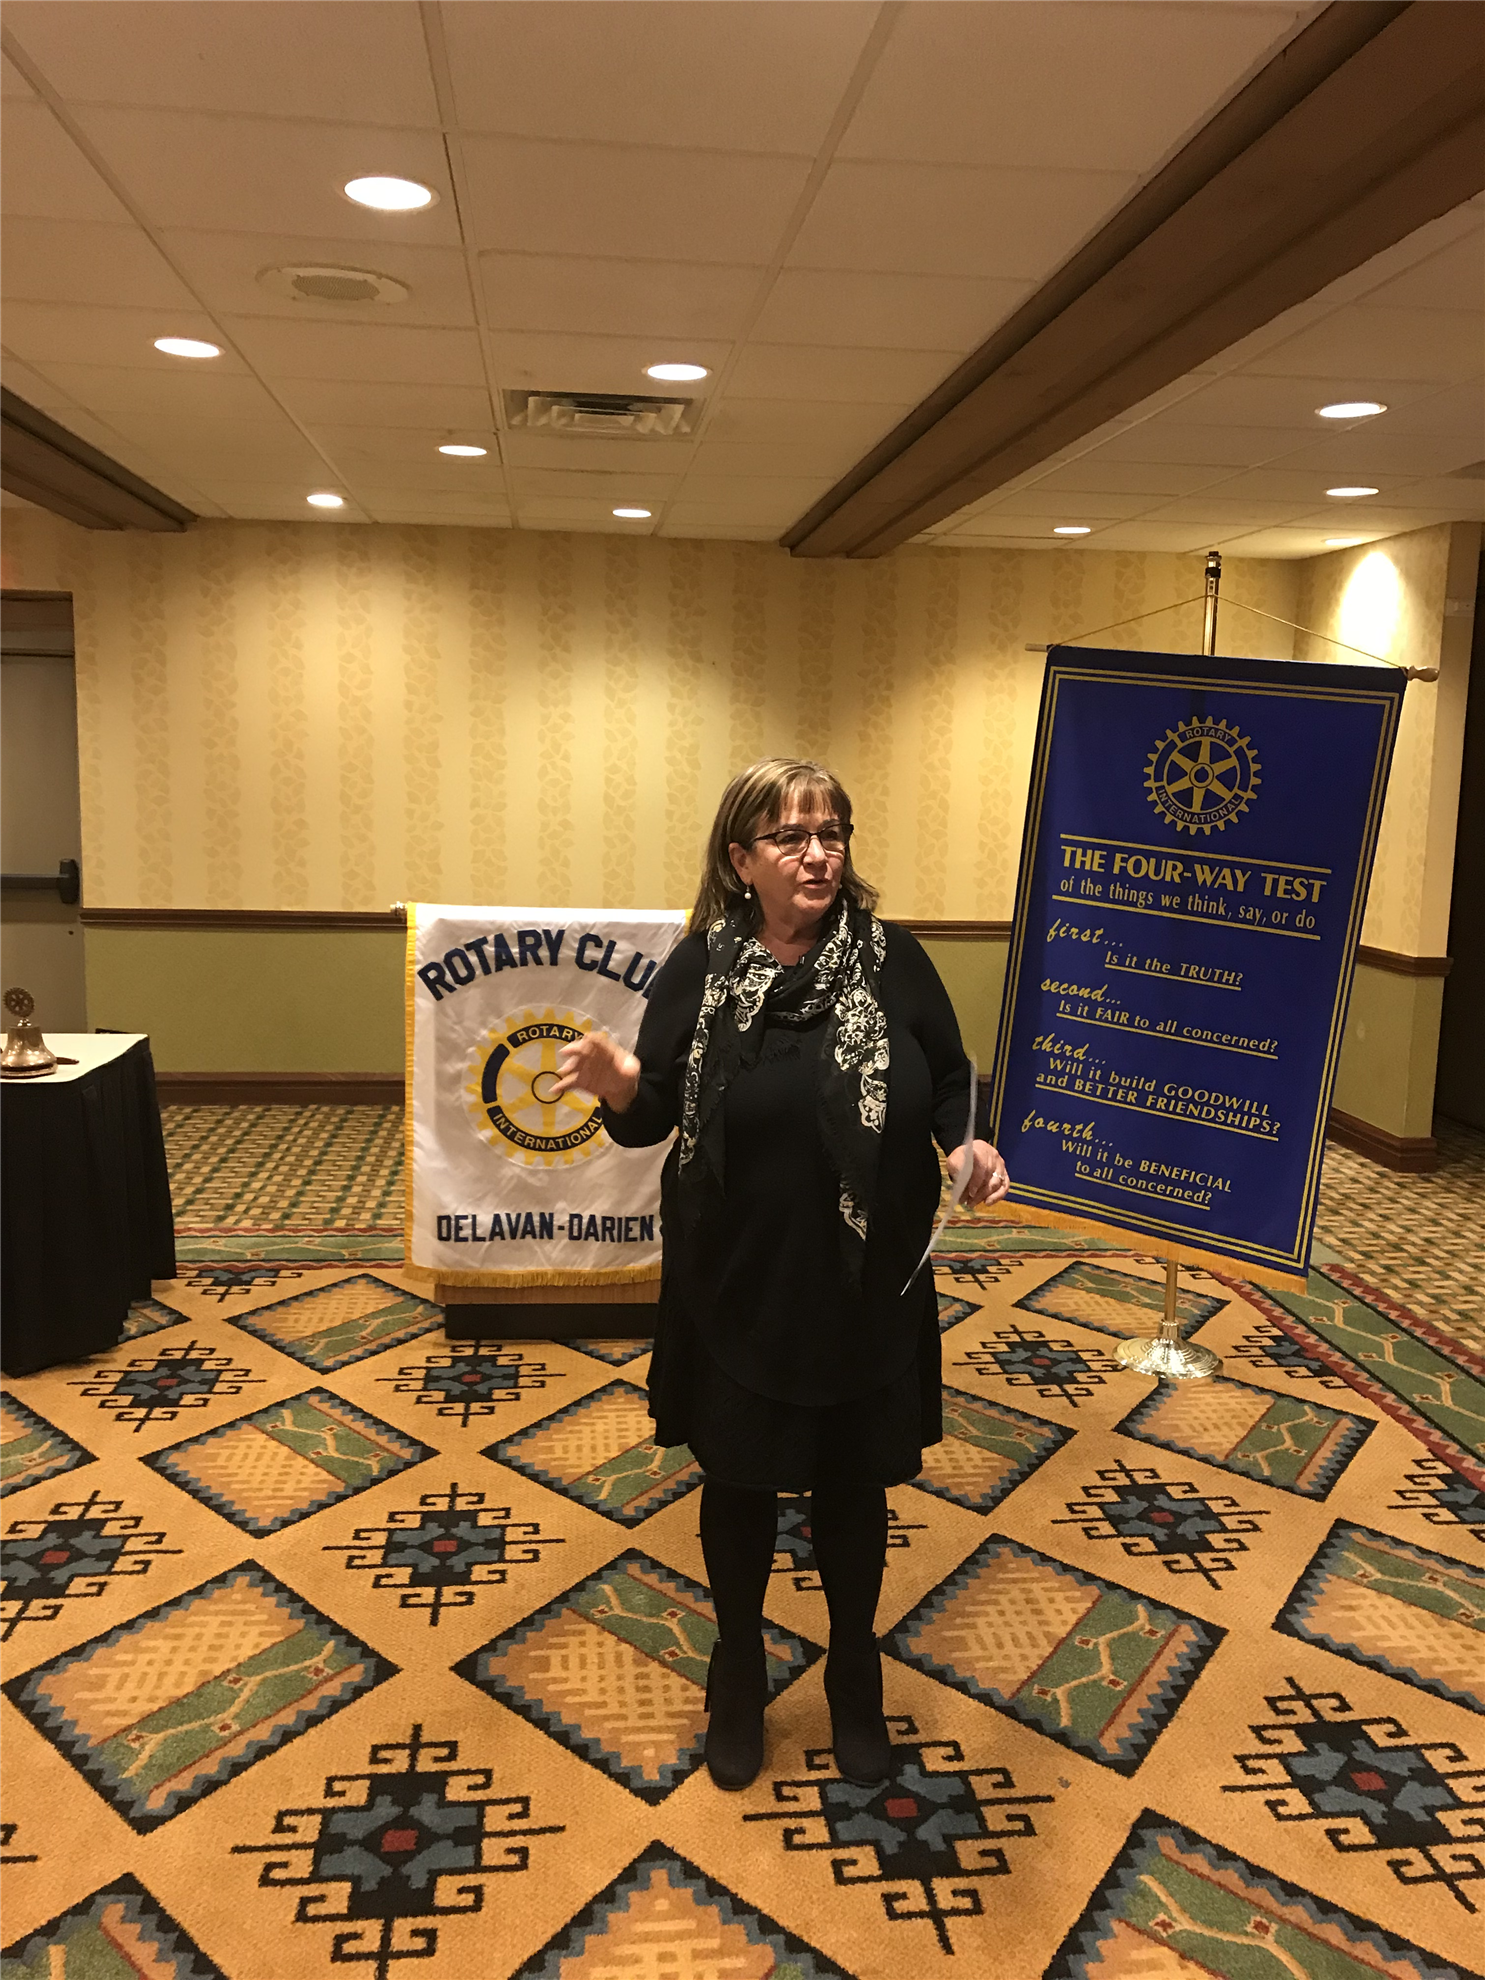 Stories | Rotary Club of Delavan-Darien